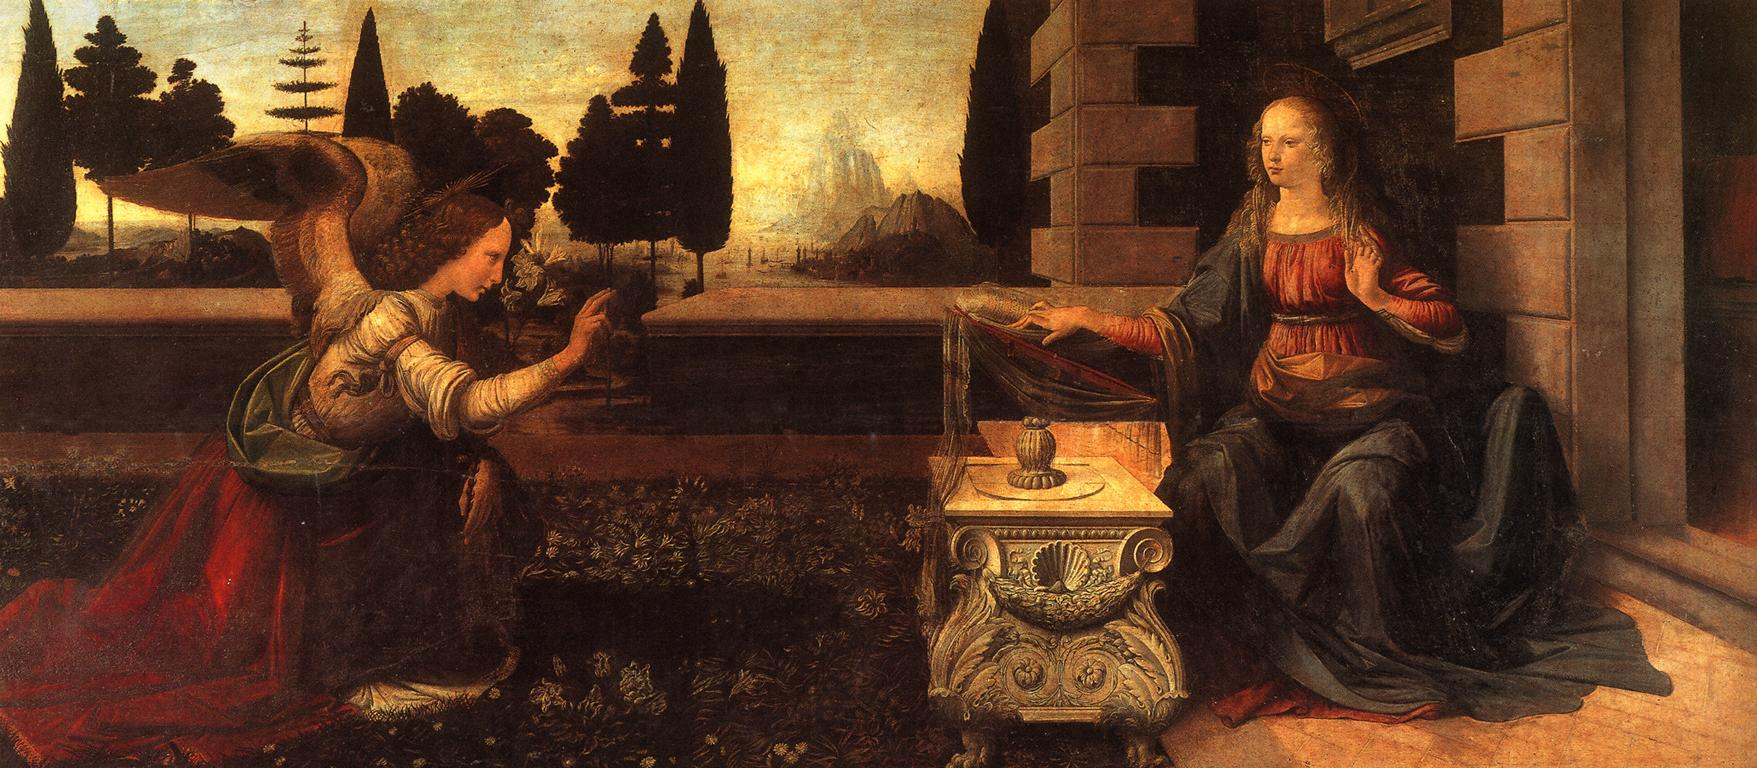 The Annunciation by Leonardo da Vinci; taken from Wikipedia